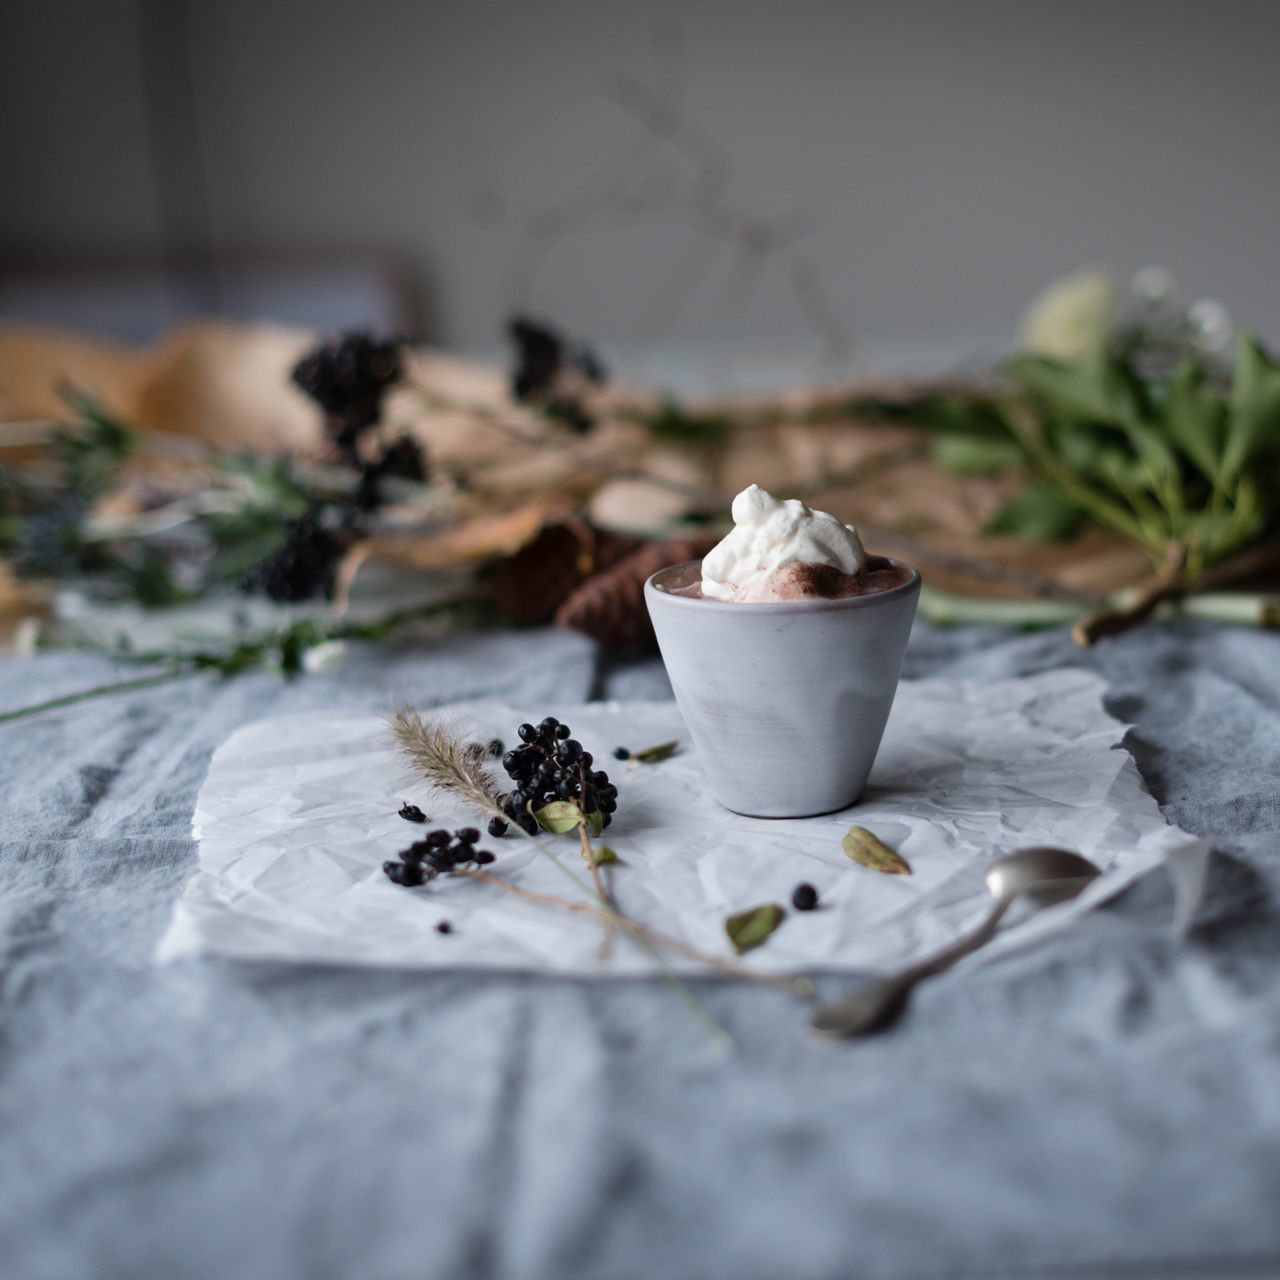 lifestyle photography Autumn vibes still life food moments of life foodstyling ceramic Food and Drink food photography foodphotography Autumn StillLifePhotography hot chocolate sweet food coffee break Hot beverage